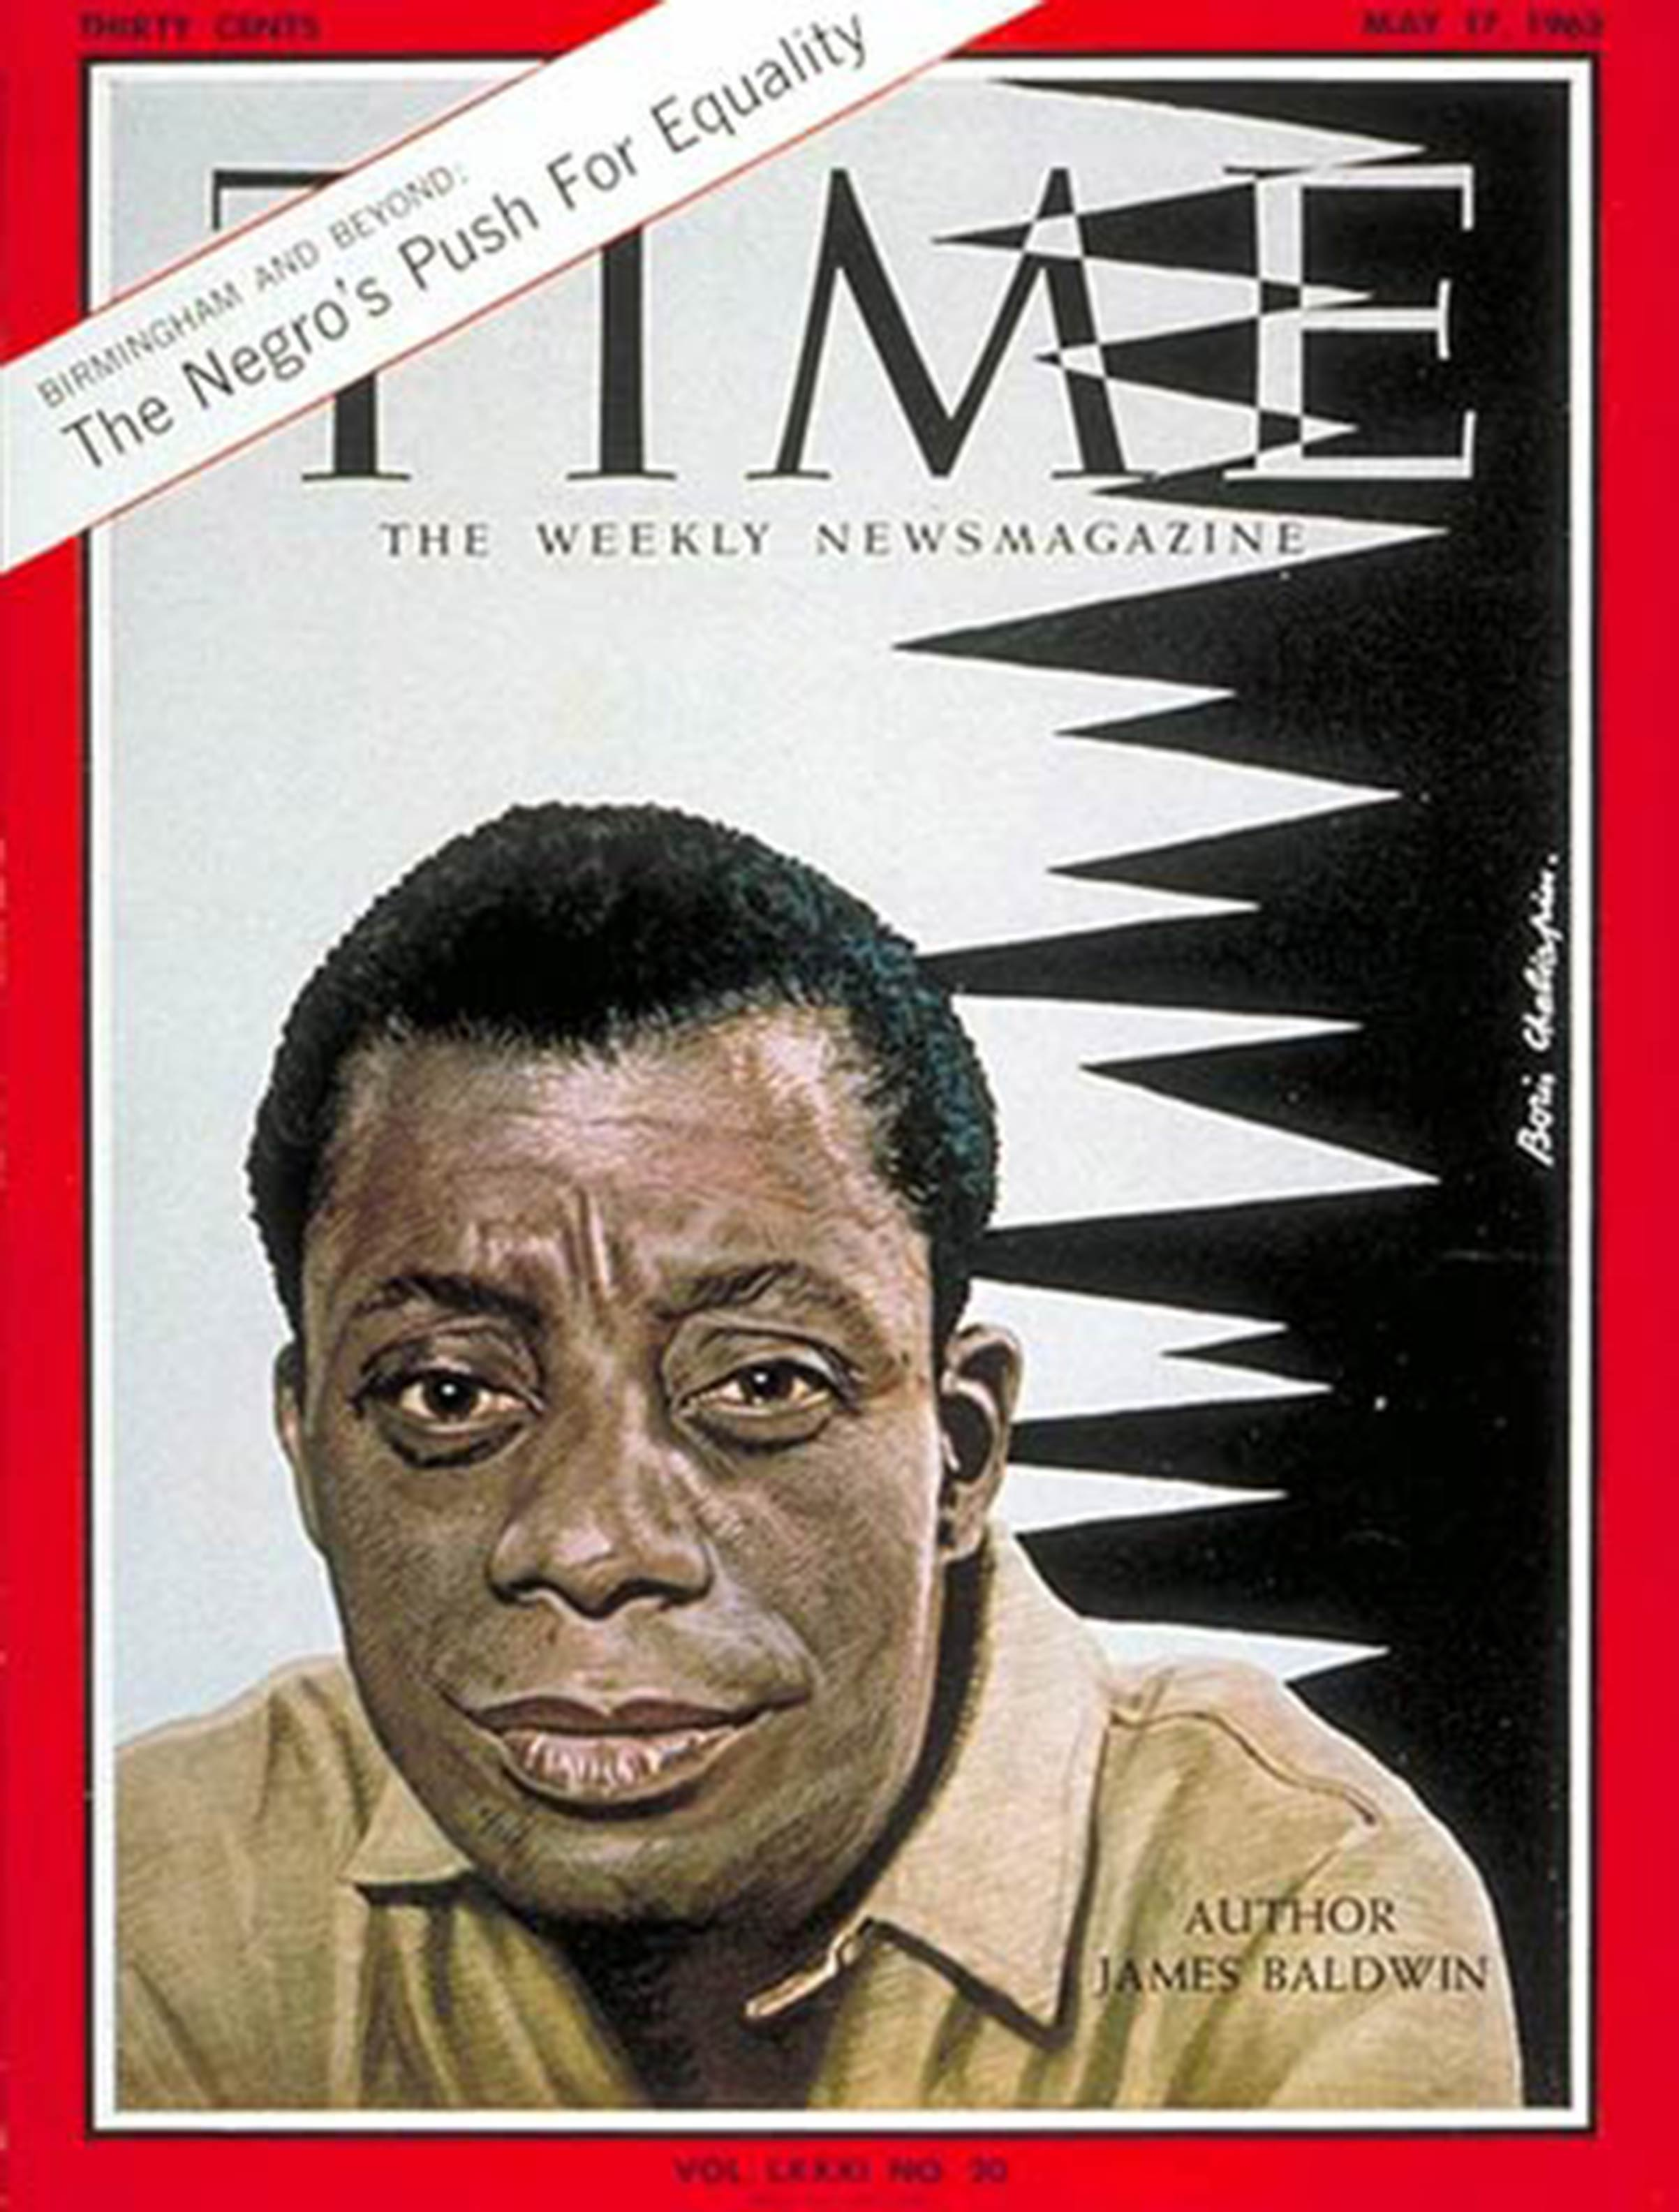 Author James Baldwin on the cover of TIME's May 17, 1963, issue.